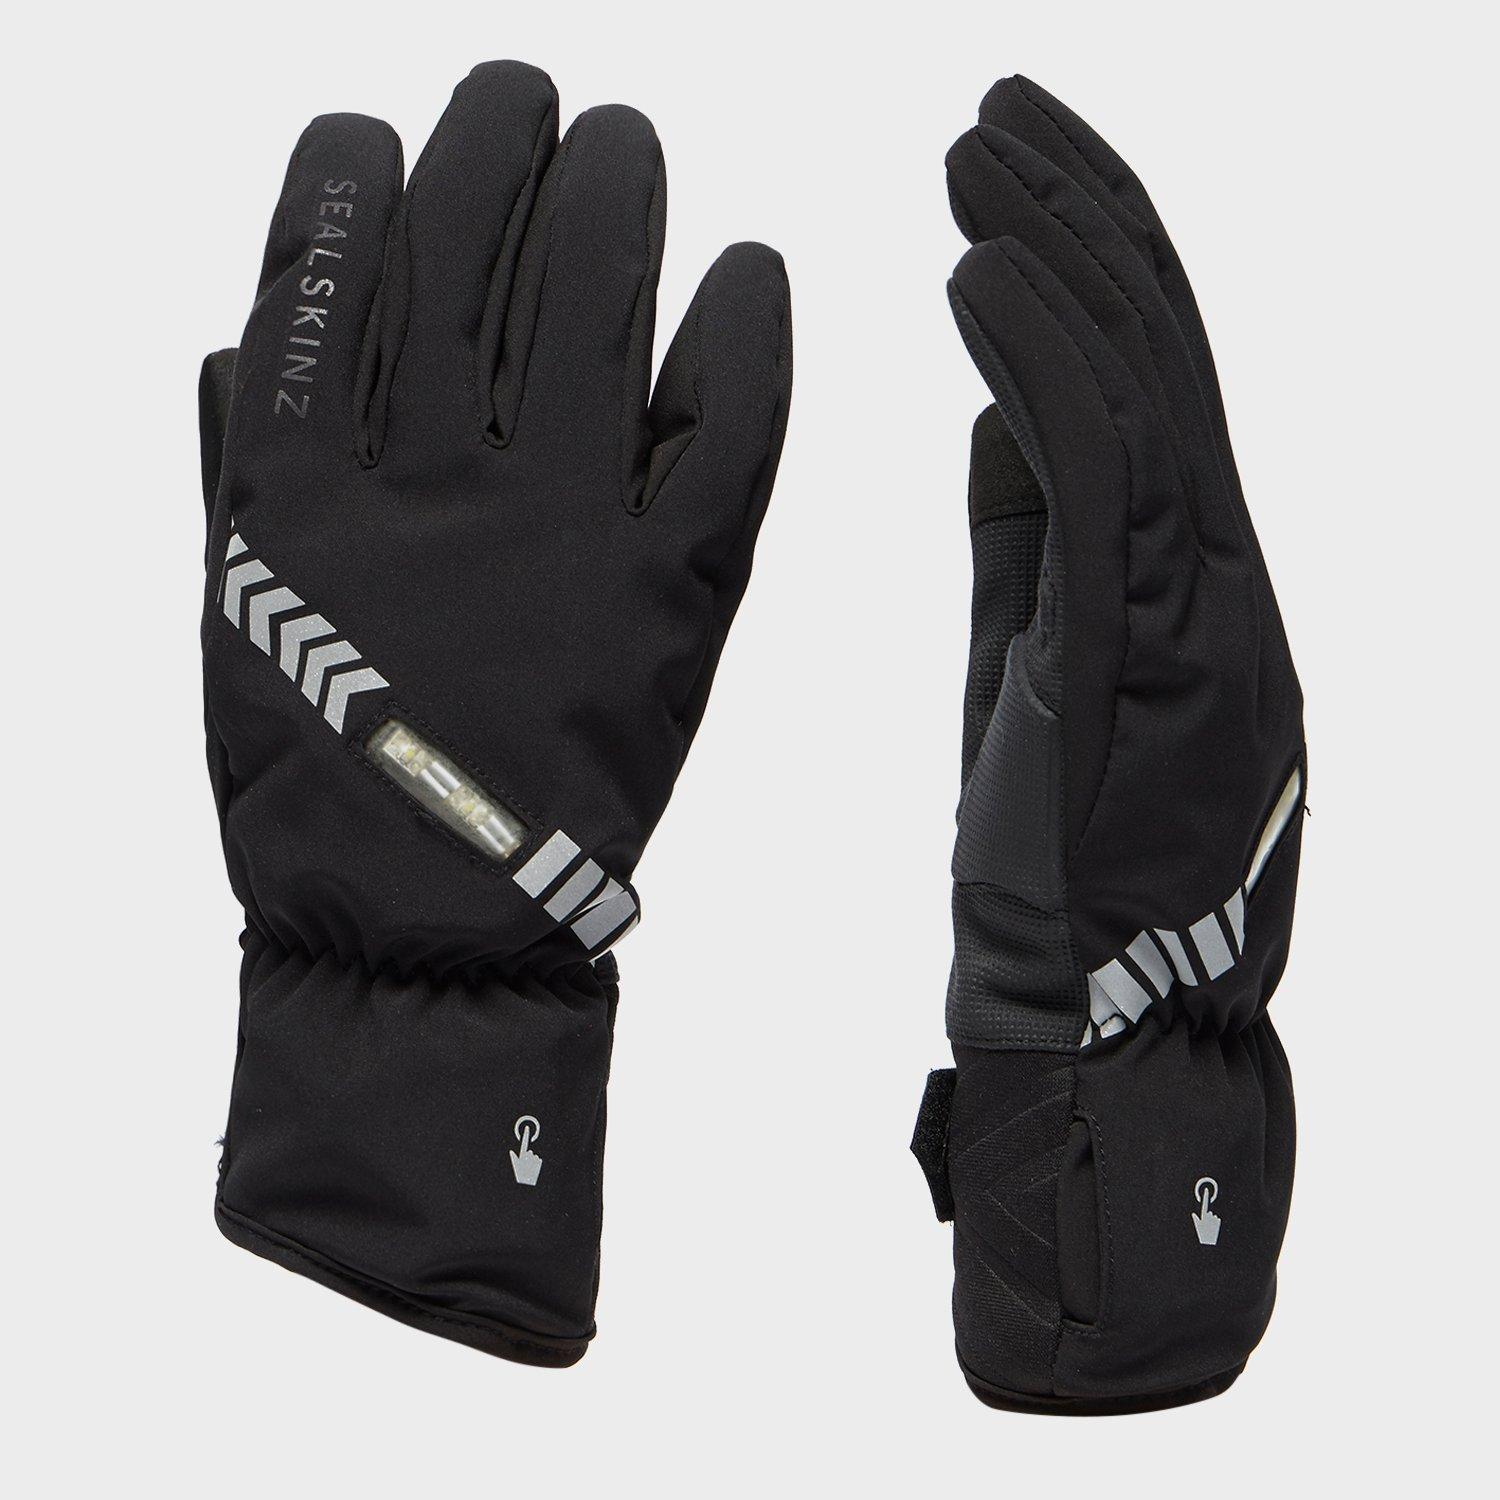 Sealskinz Halo All Weather Cycling Gloves - Black, Black